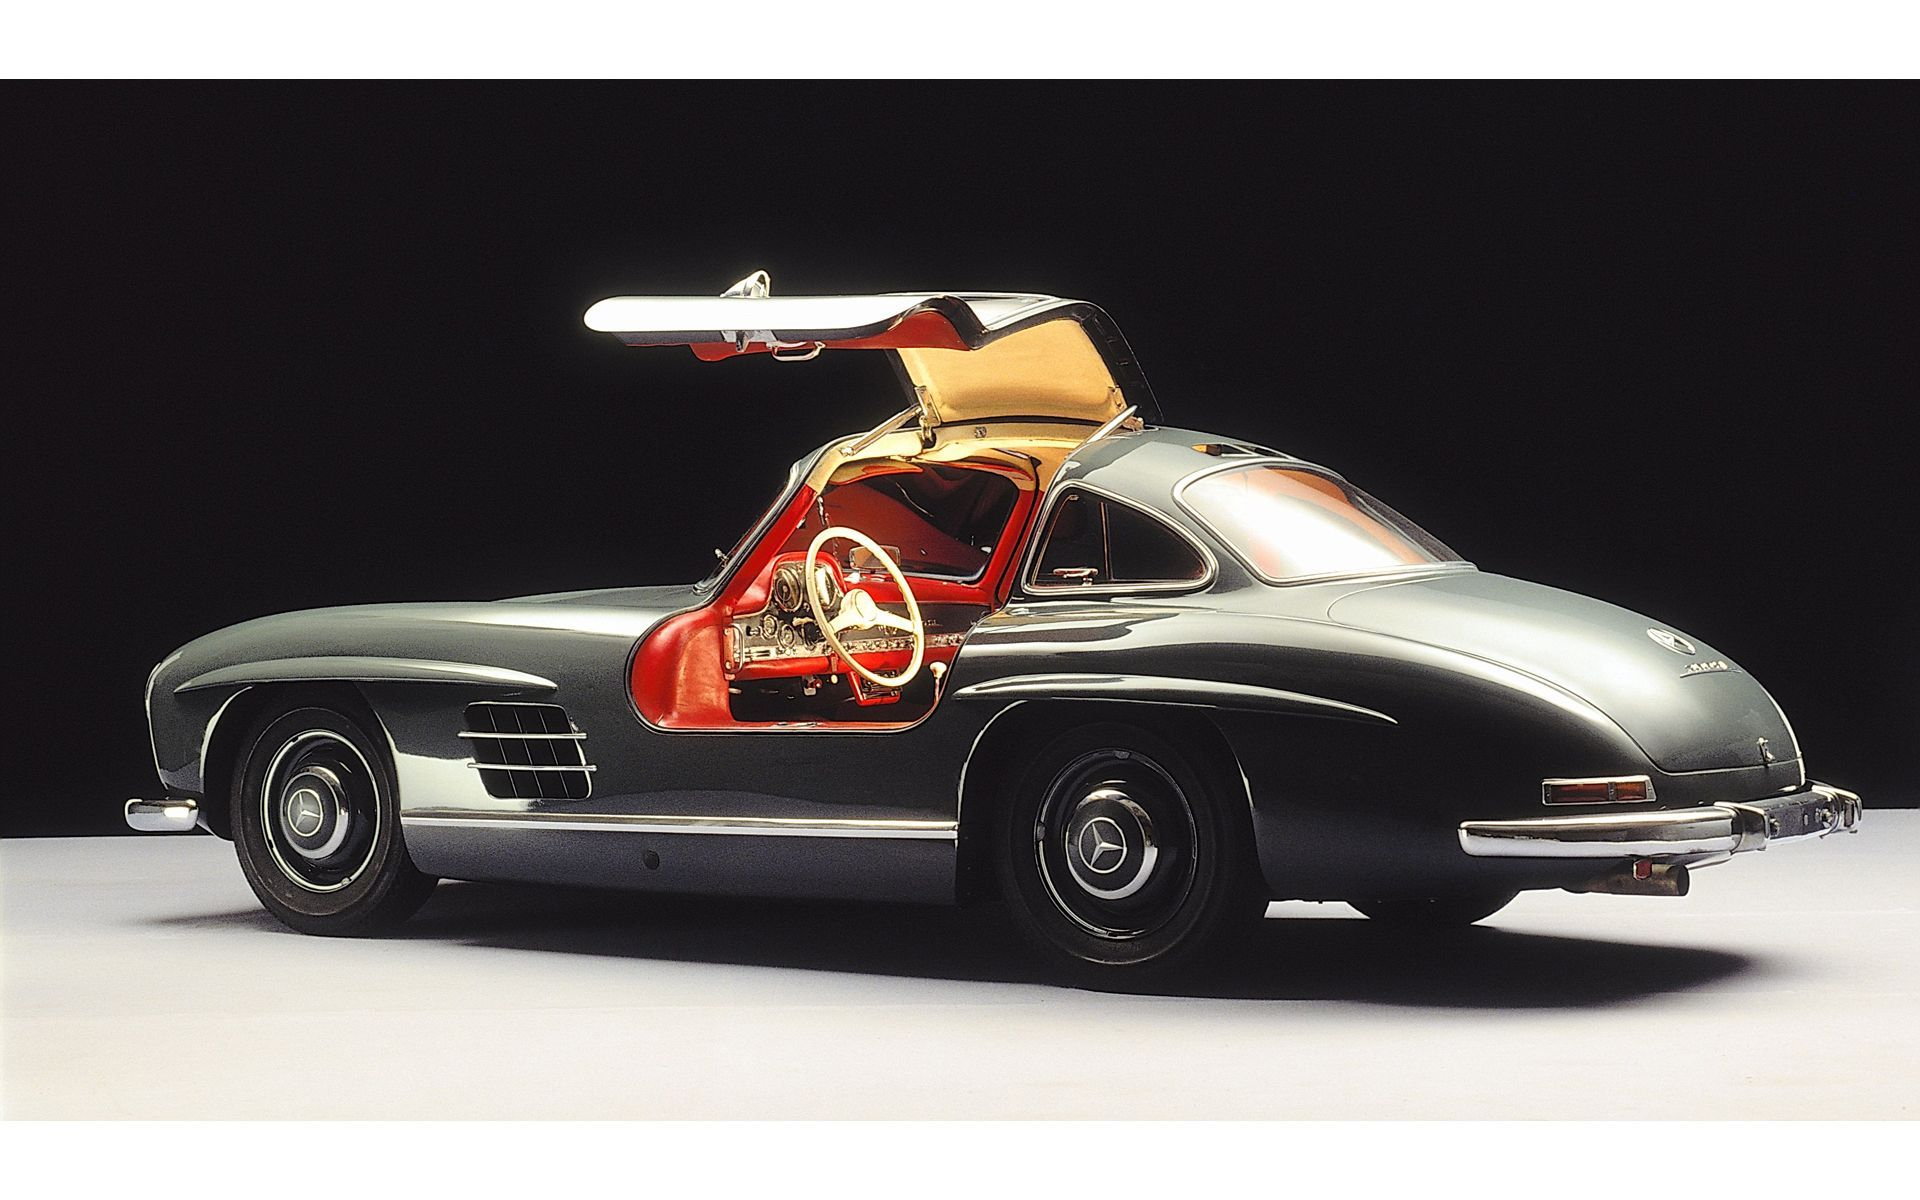 This Is Classic Mercedes Bensz SL300 Gullwing I Would Love To Have One Of These